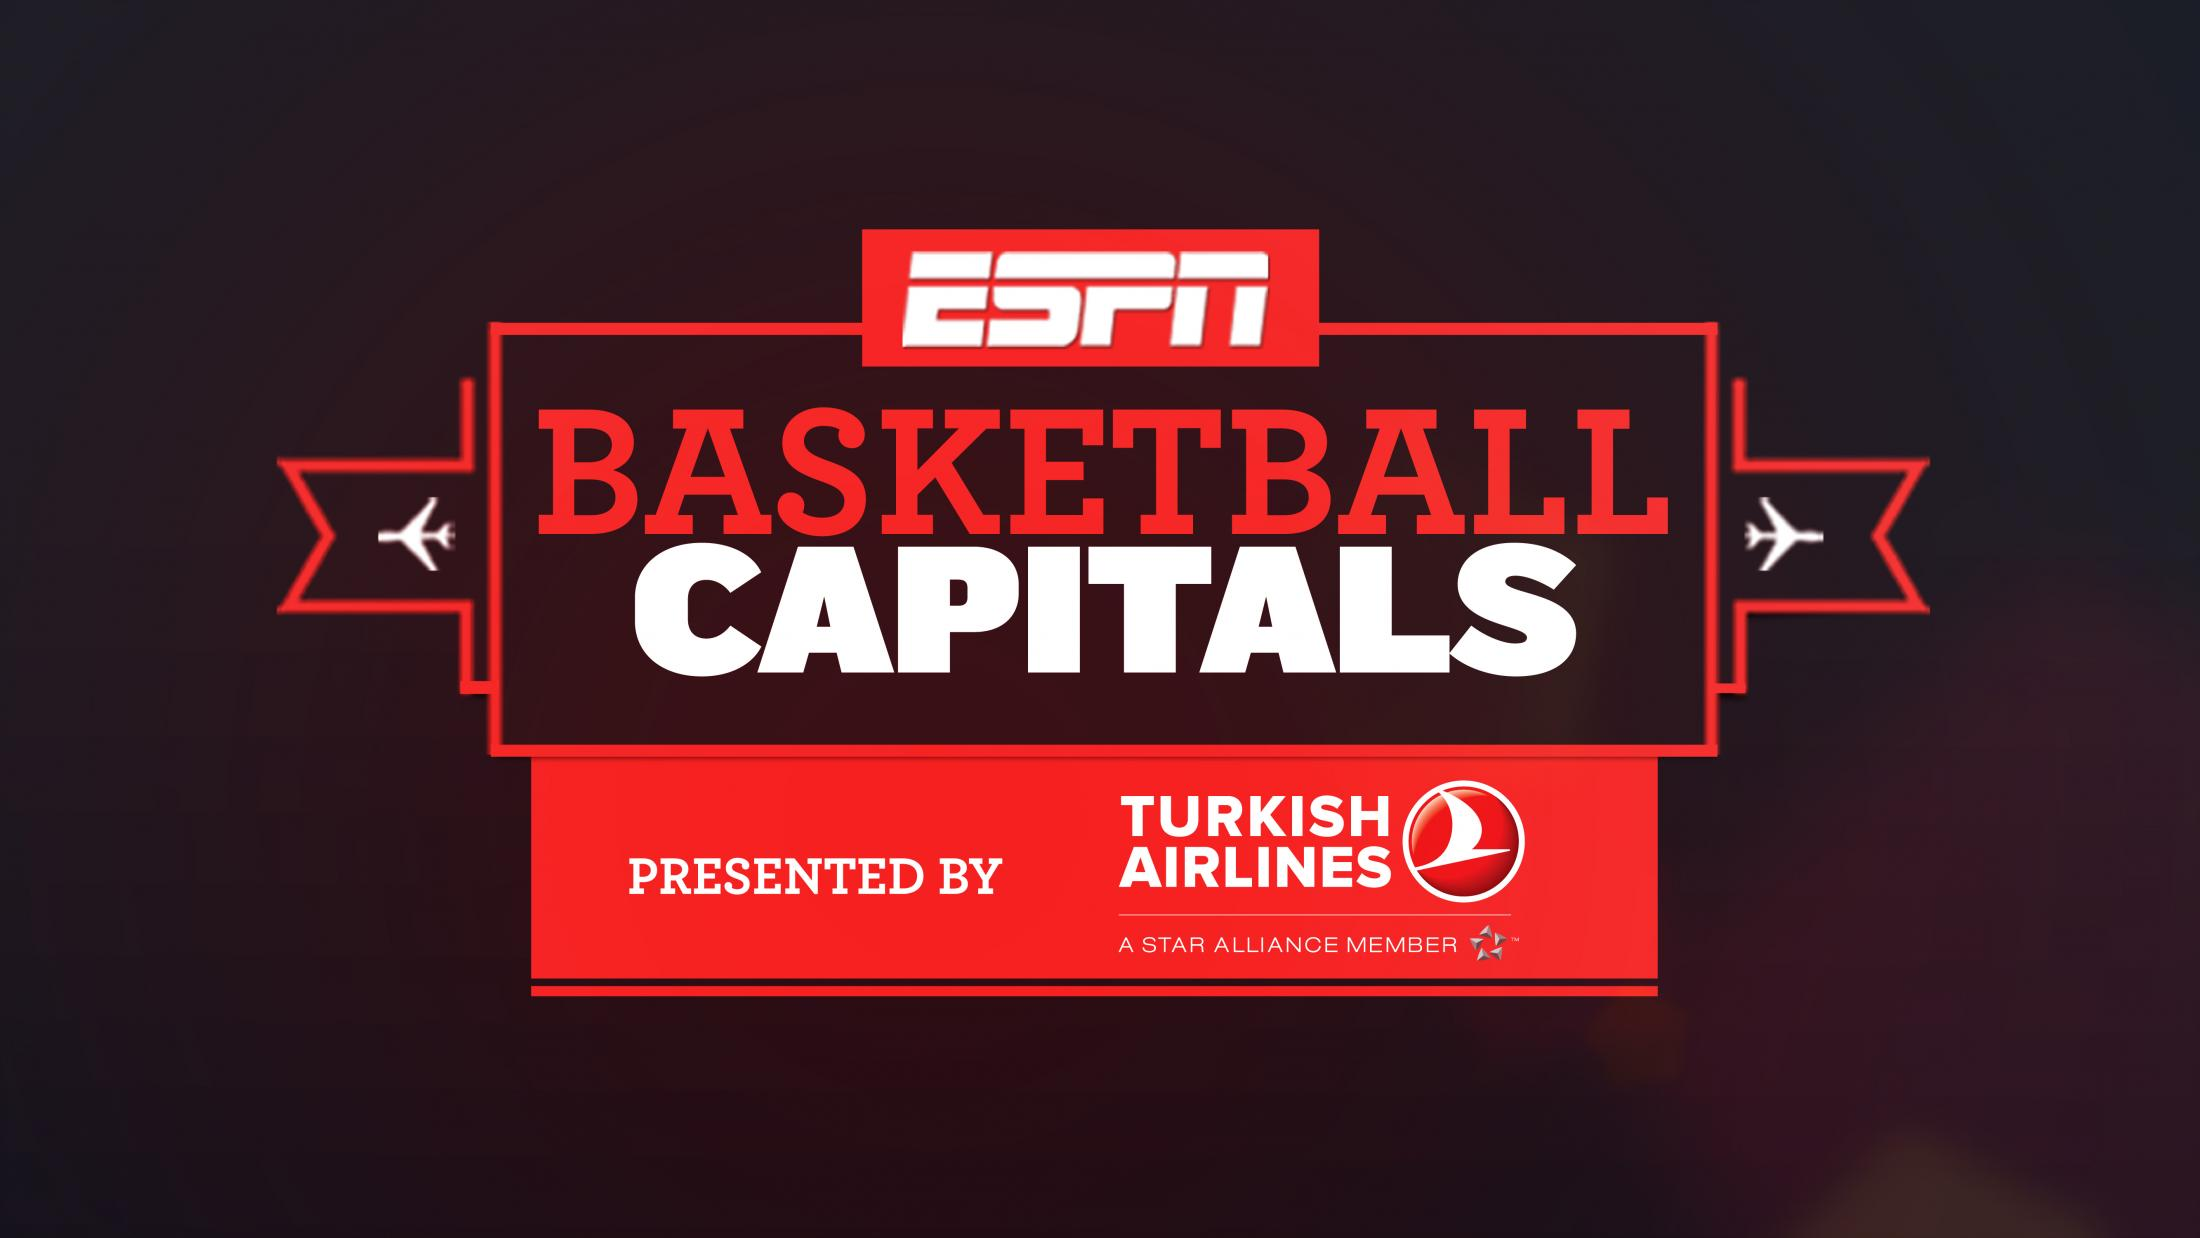 Thumbnail for Basketball Capitals presented by Turkish Airlines